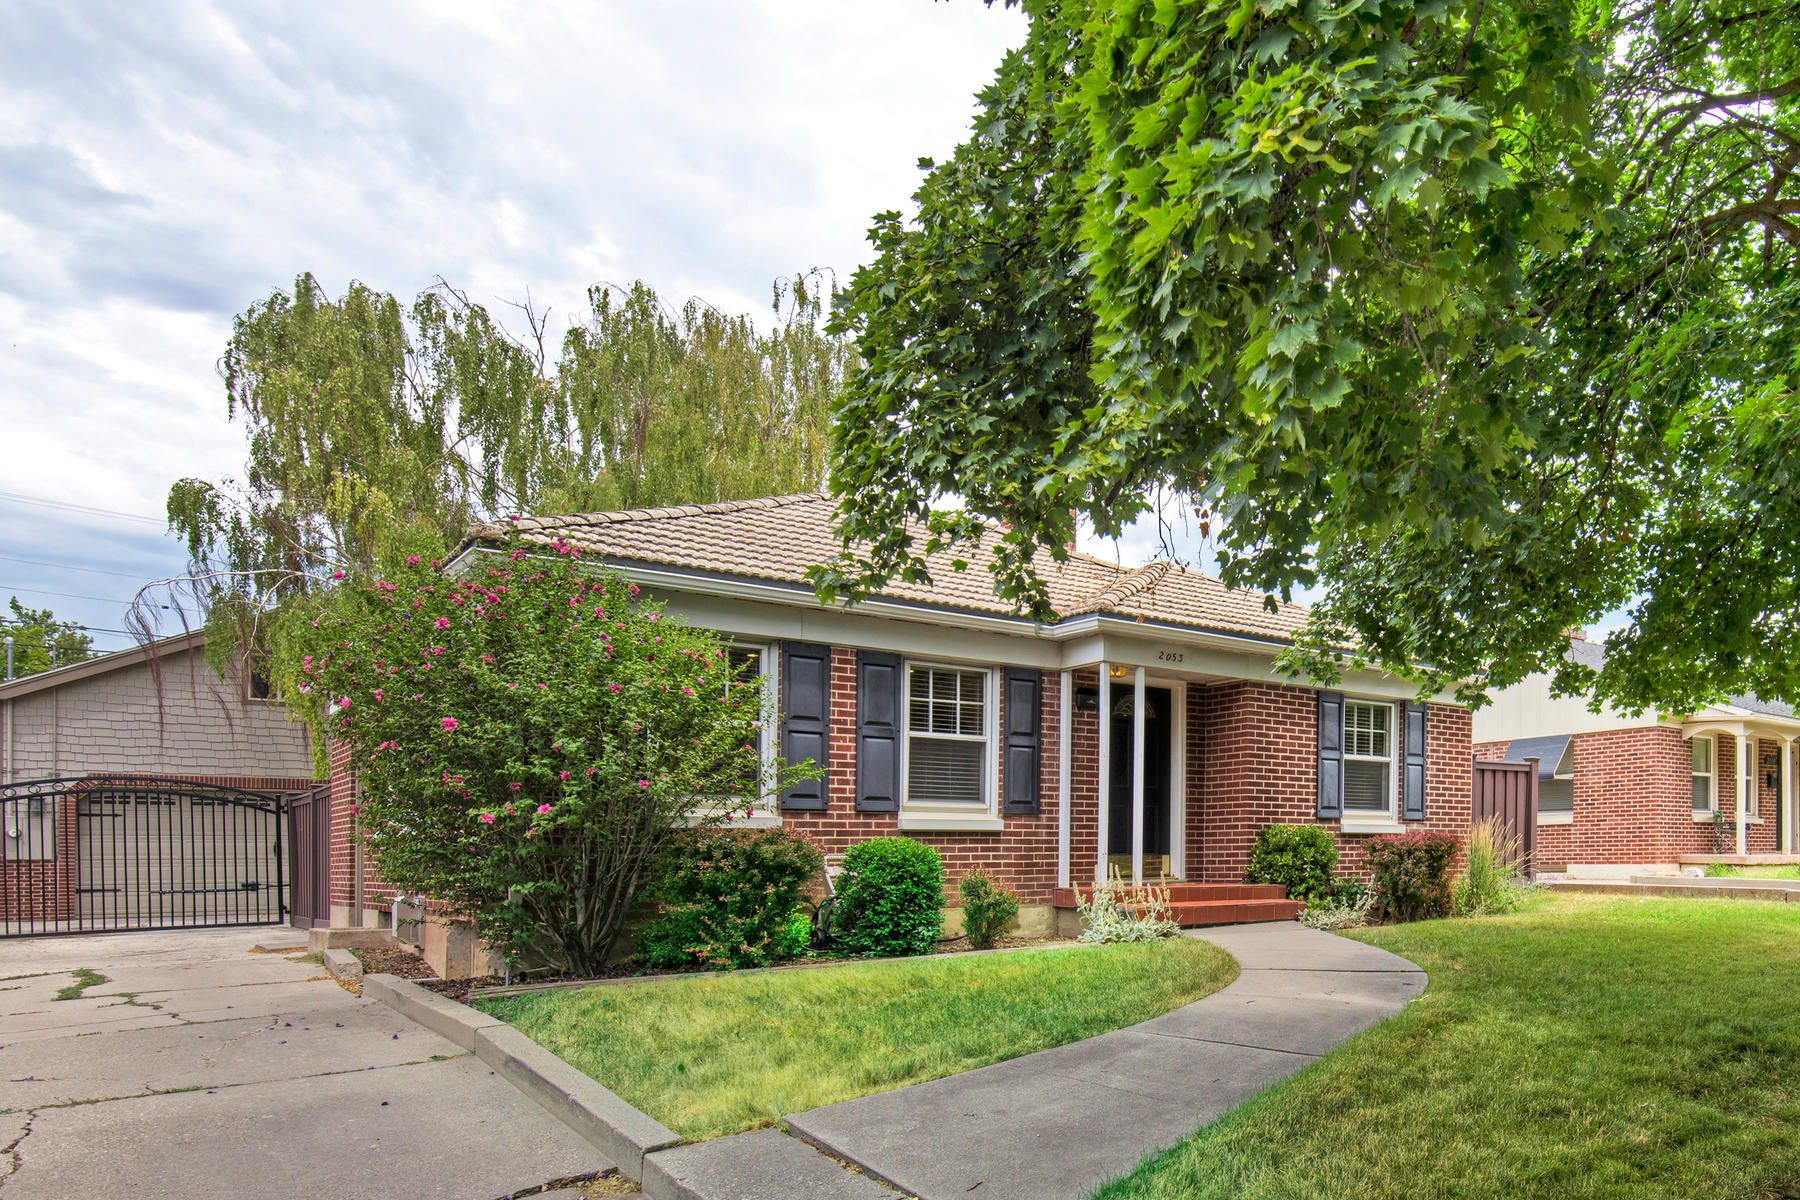 Single Family Home for Sale at Quintessential Red Brick Bungalow 2053 E Hollywood Ave Salt Lake City, Utah, 84108 United States